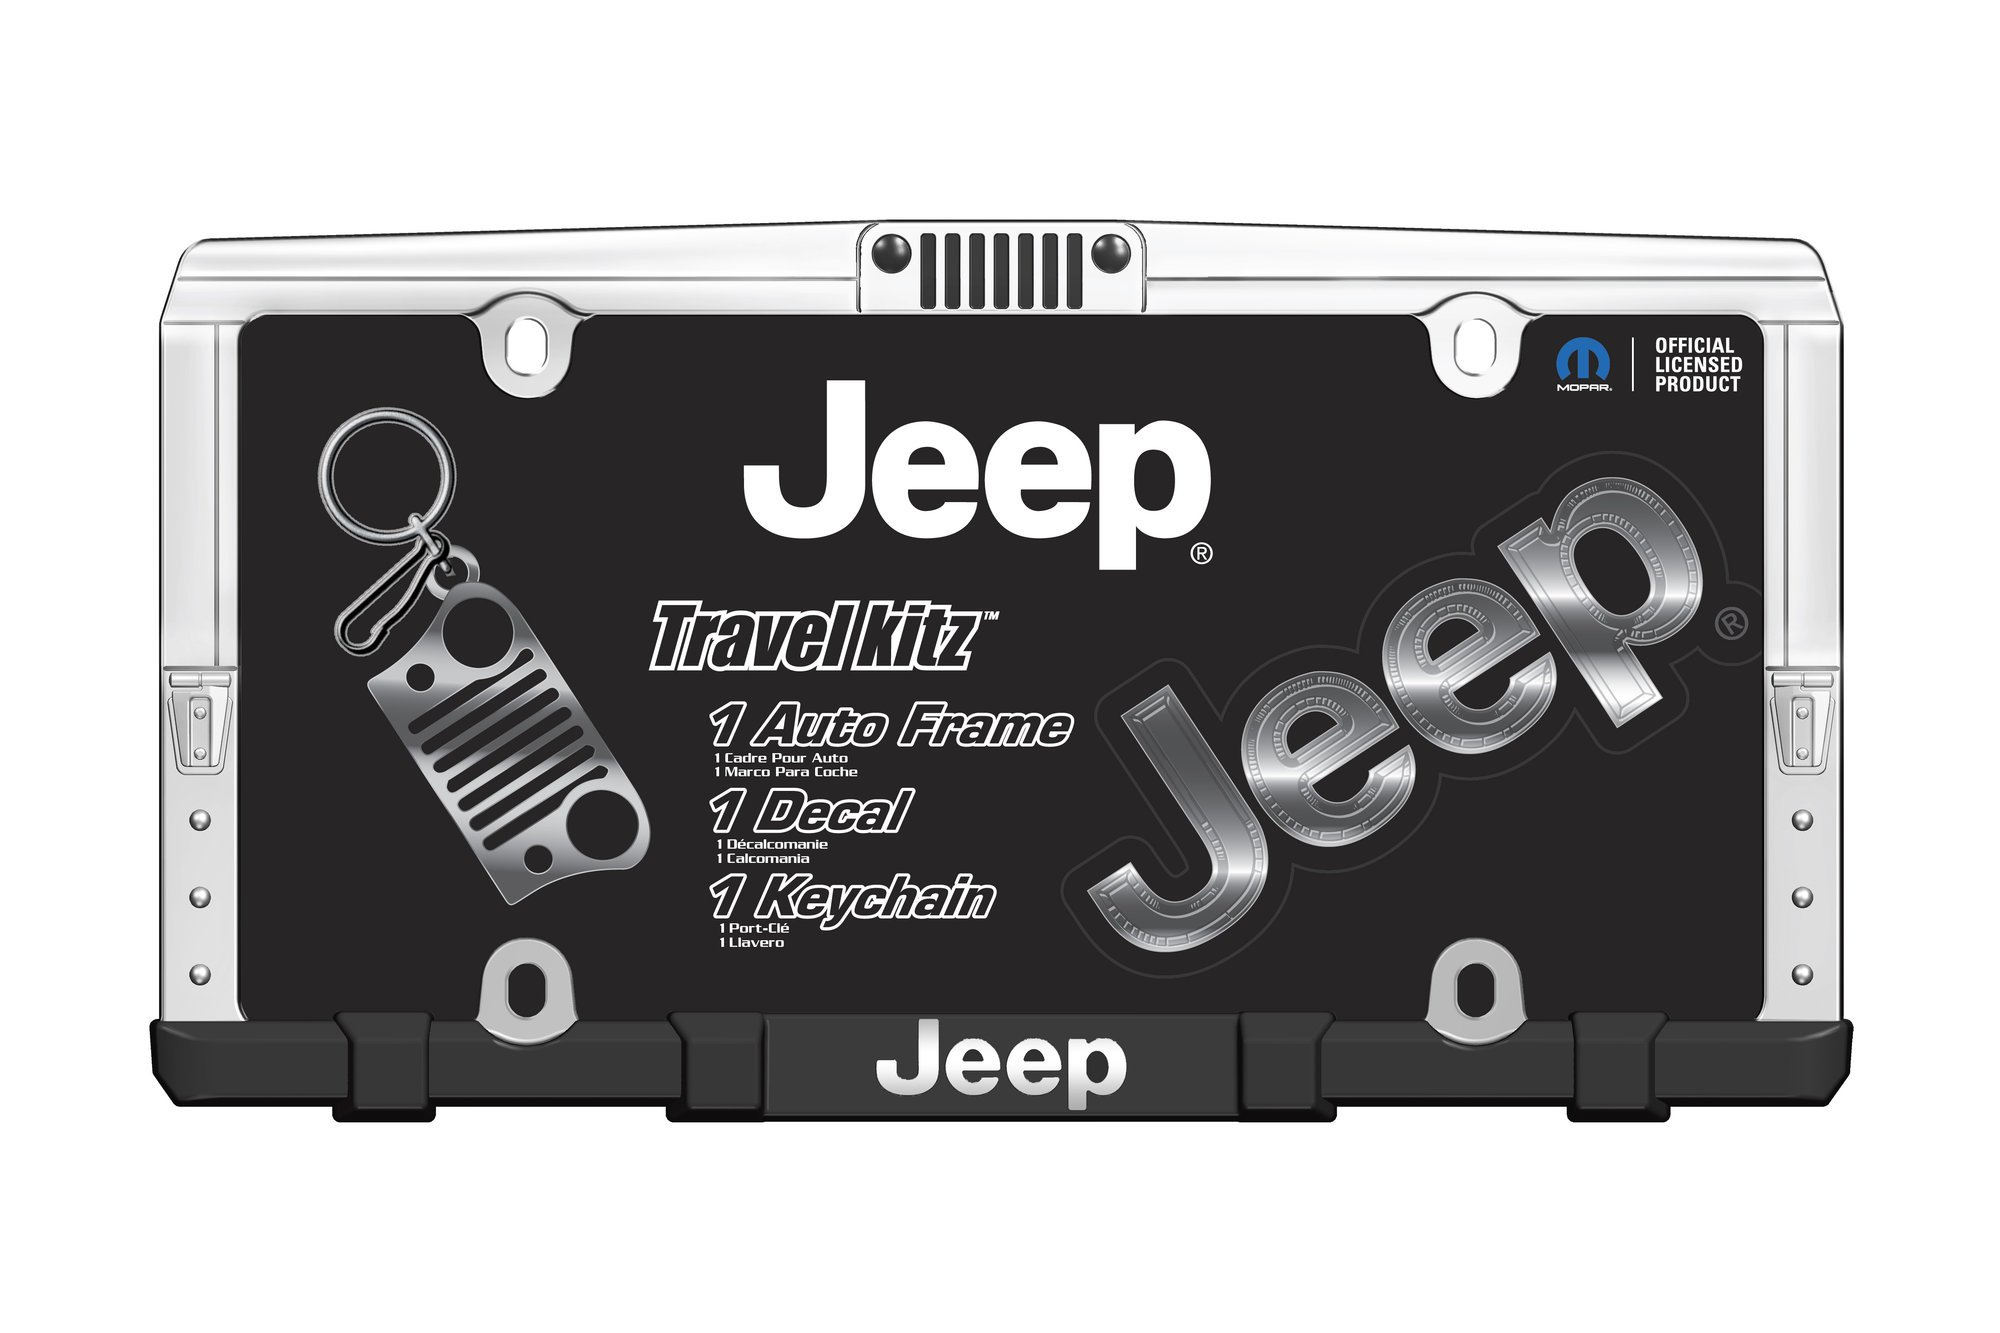 Chroma Graphics 58001 Jeep Travel Kit with License Plate Frame, Key Chain,  & Logo Decal.